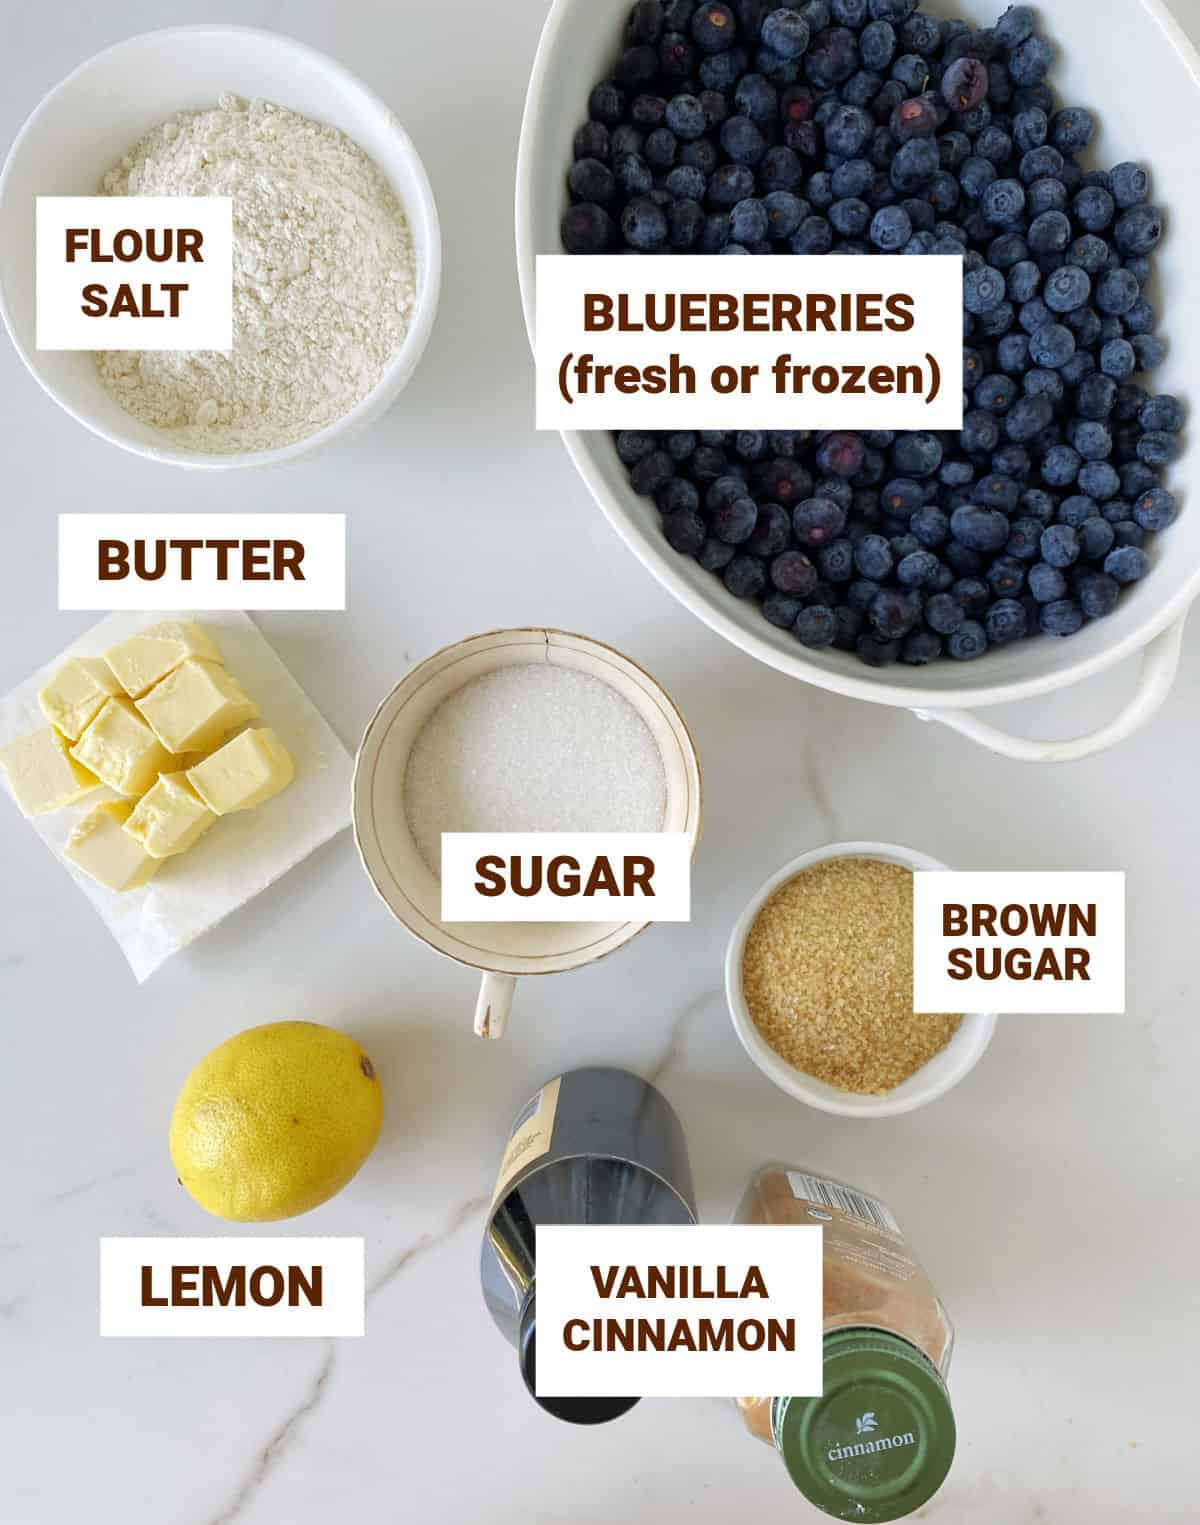 Ingredients for blueberry crumble in bowls on white surface including lemon, butter, vanilla and cinnamon